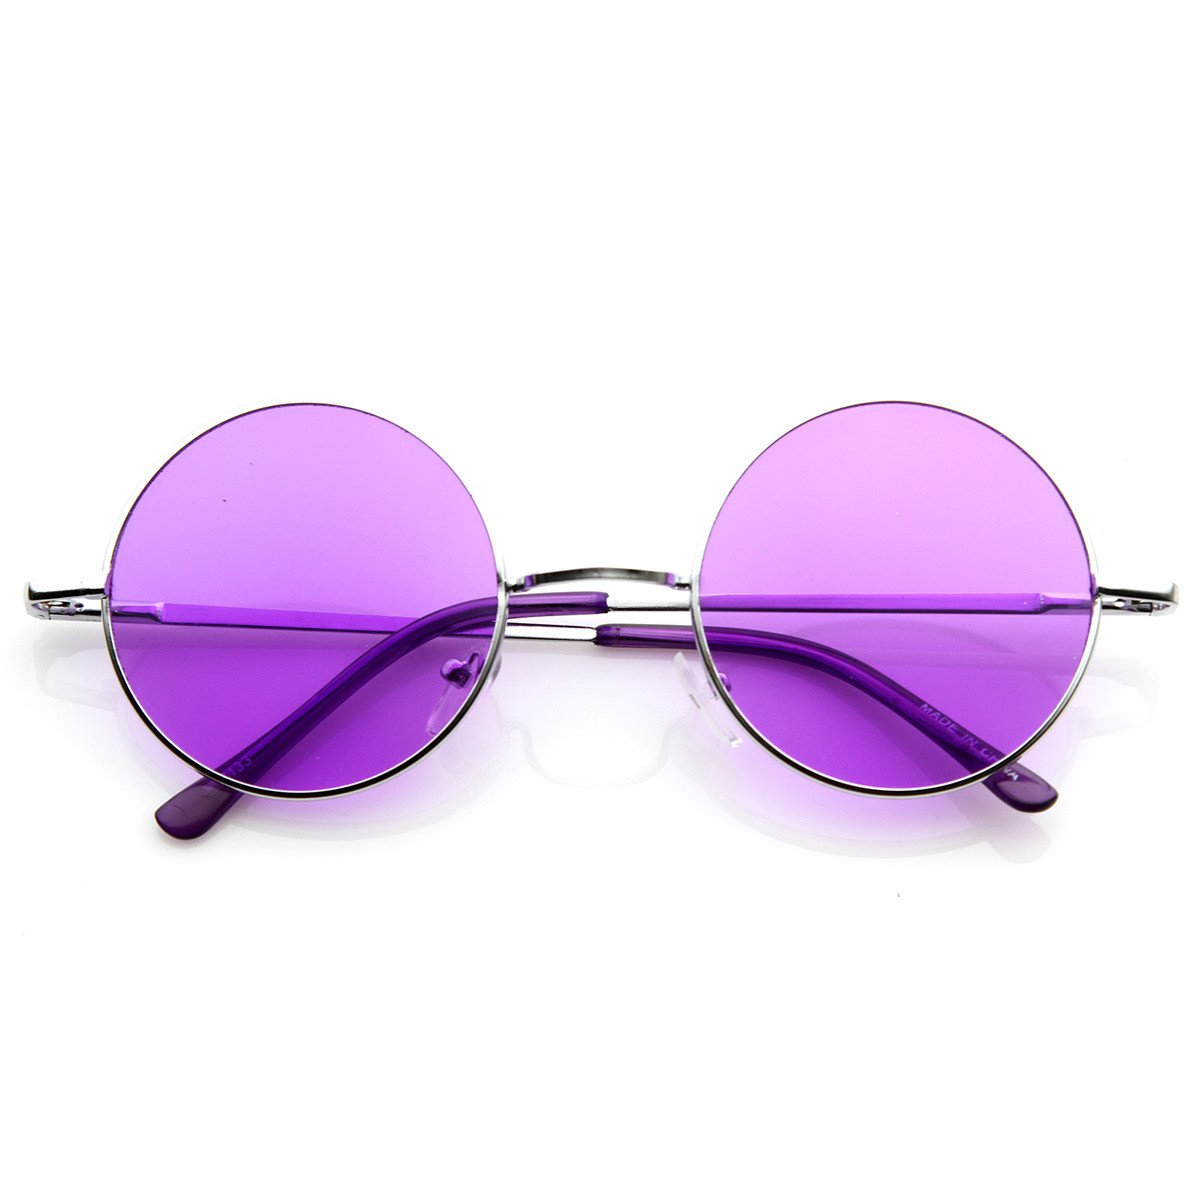 8594a9c0099 Retro Hippie Metal Lennon Round Color Lens Sunglasses 8594